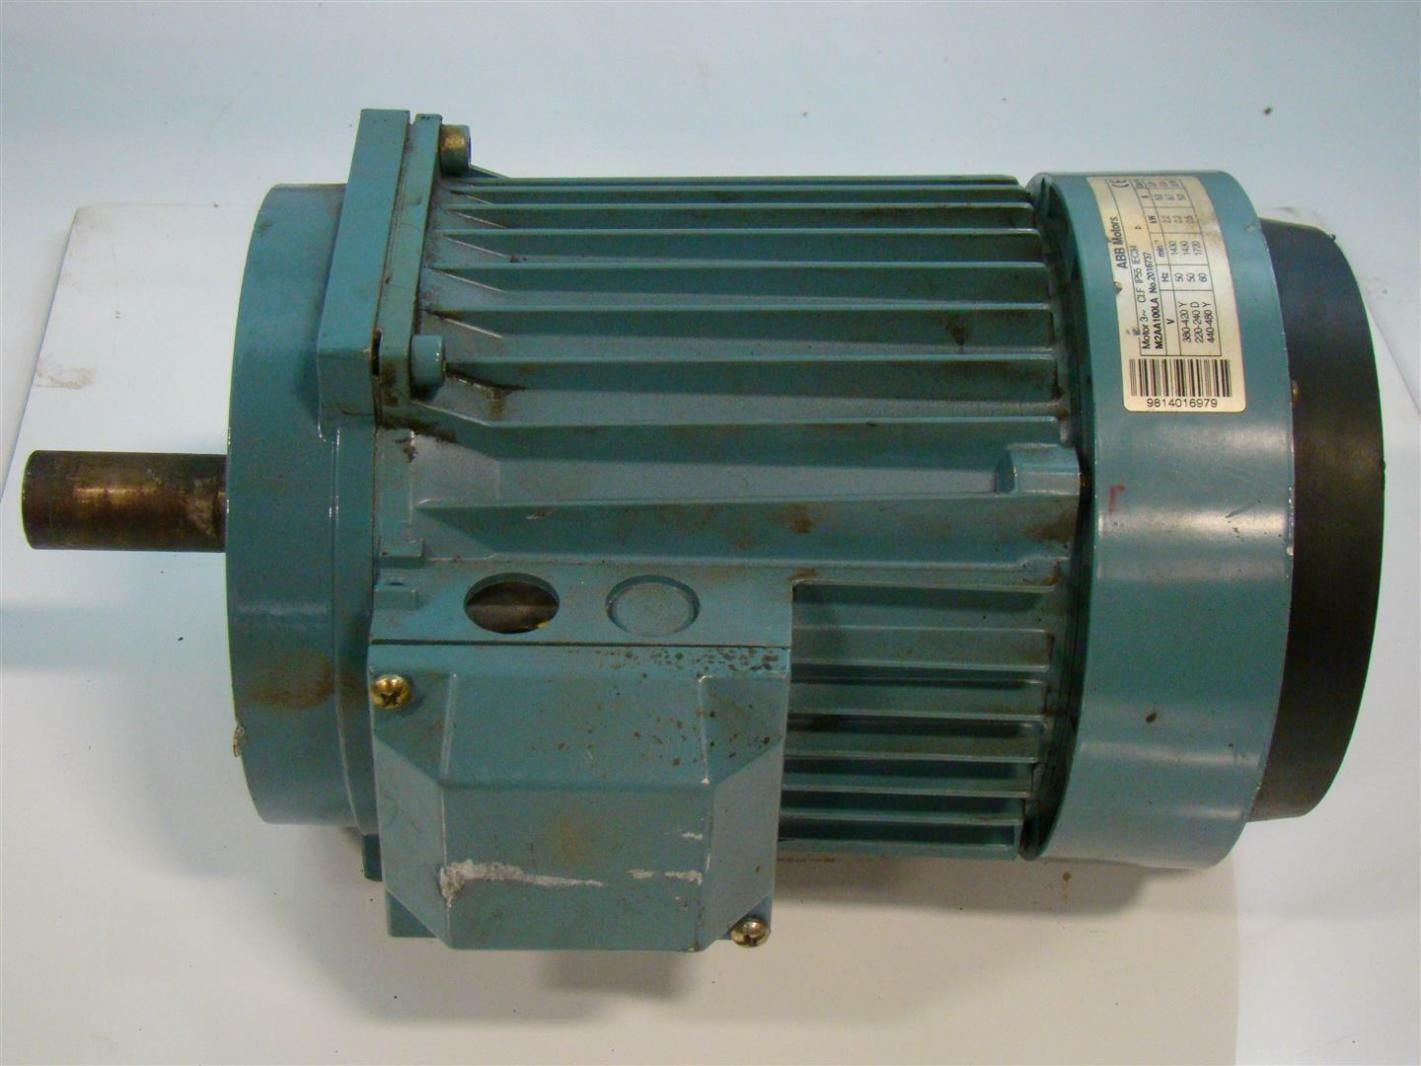 Abb Motors Electric Motor Ph3 380 420v M2000 2016737 M2aa100la